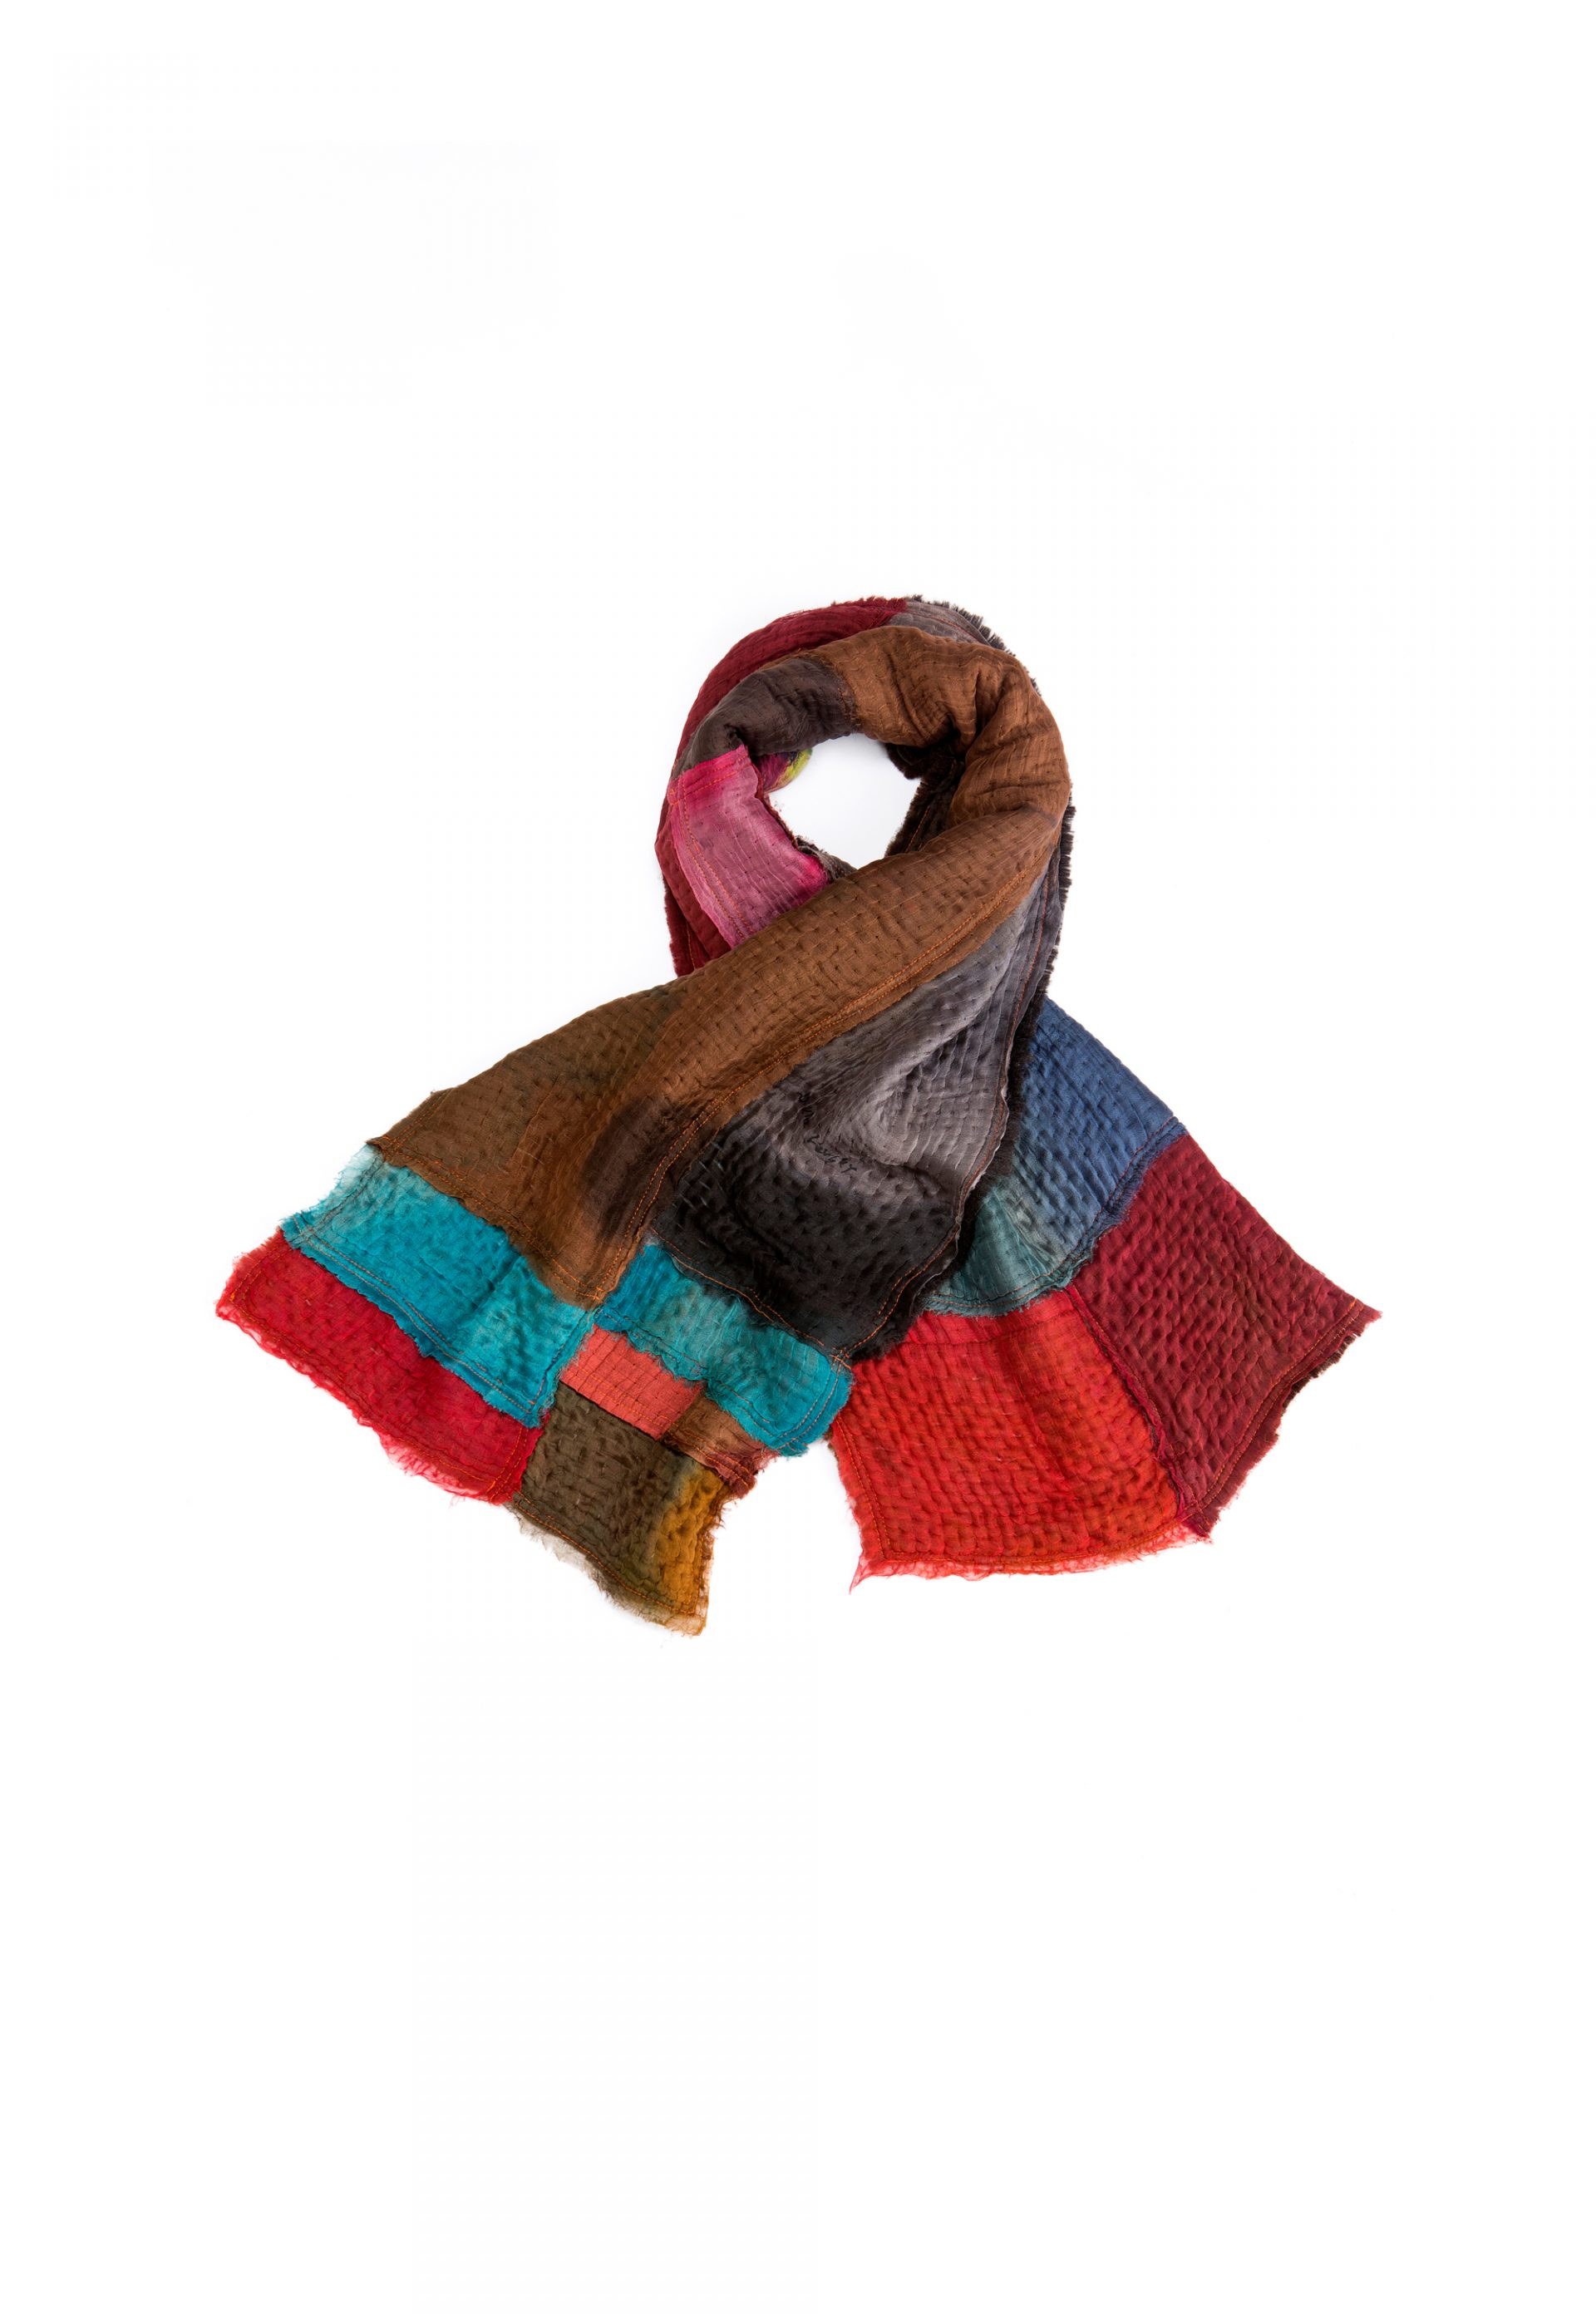 patchwork handmade shawl, colorful silk and wool scarf